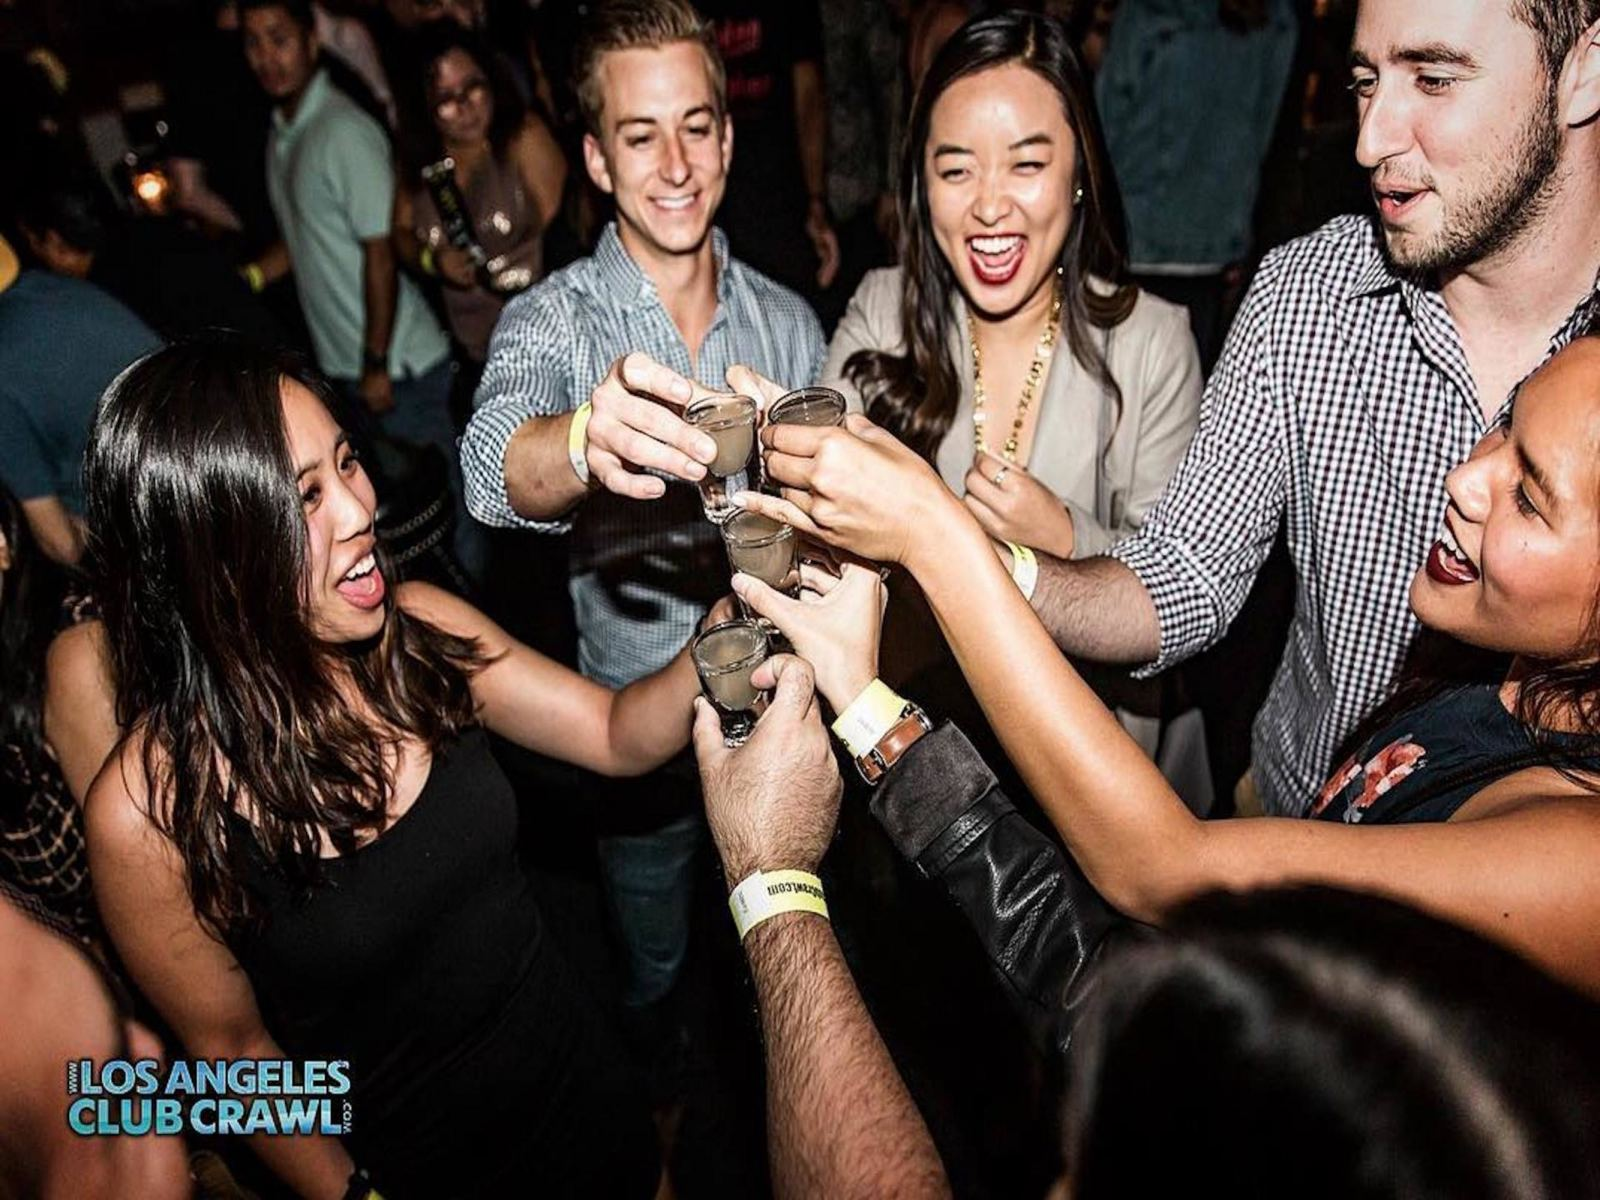 Los Angeles Club Crawl drinks